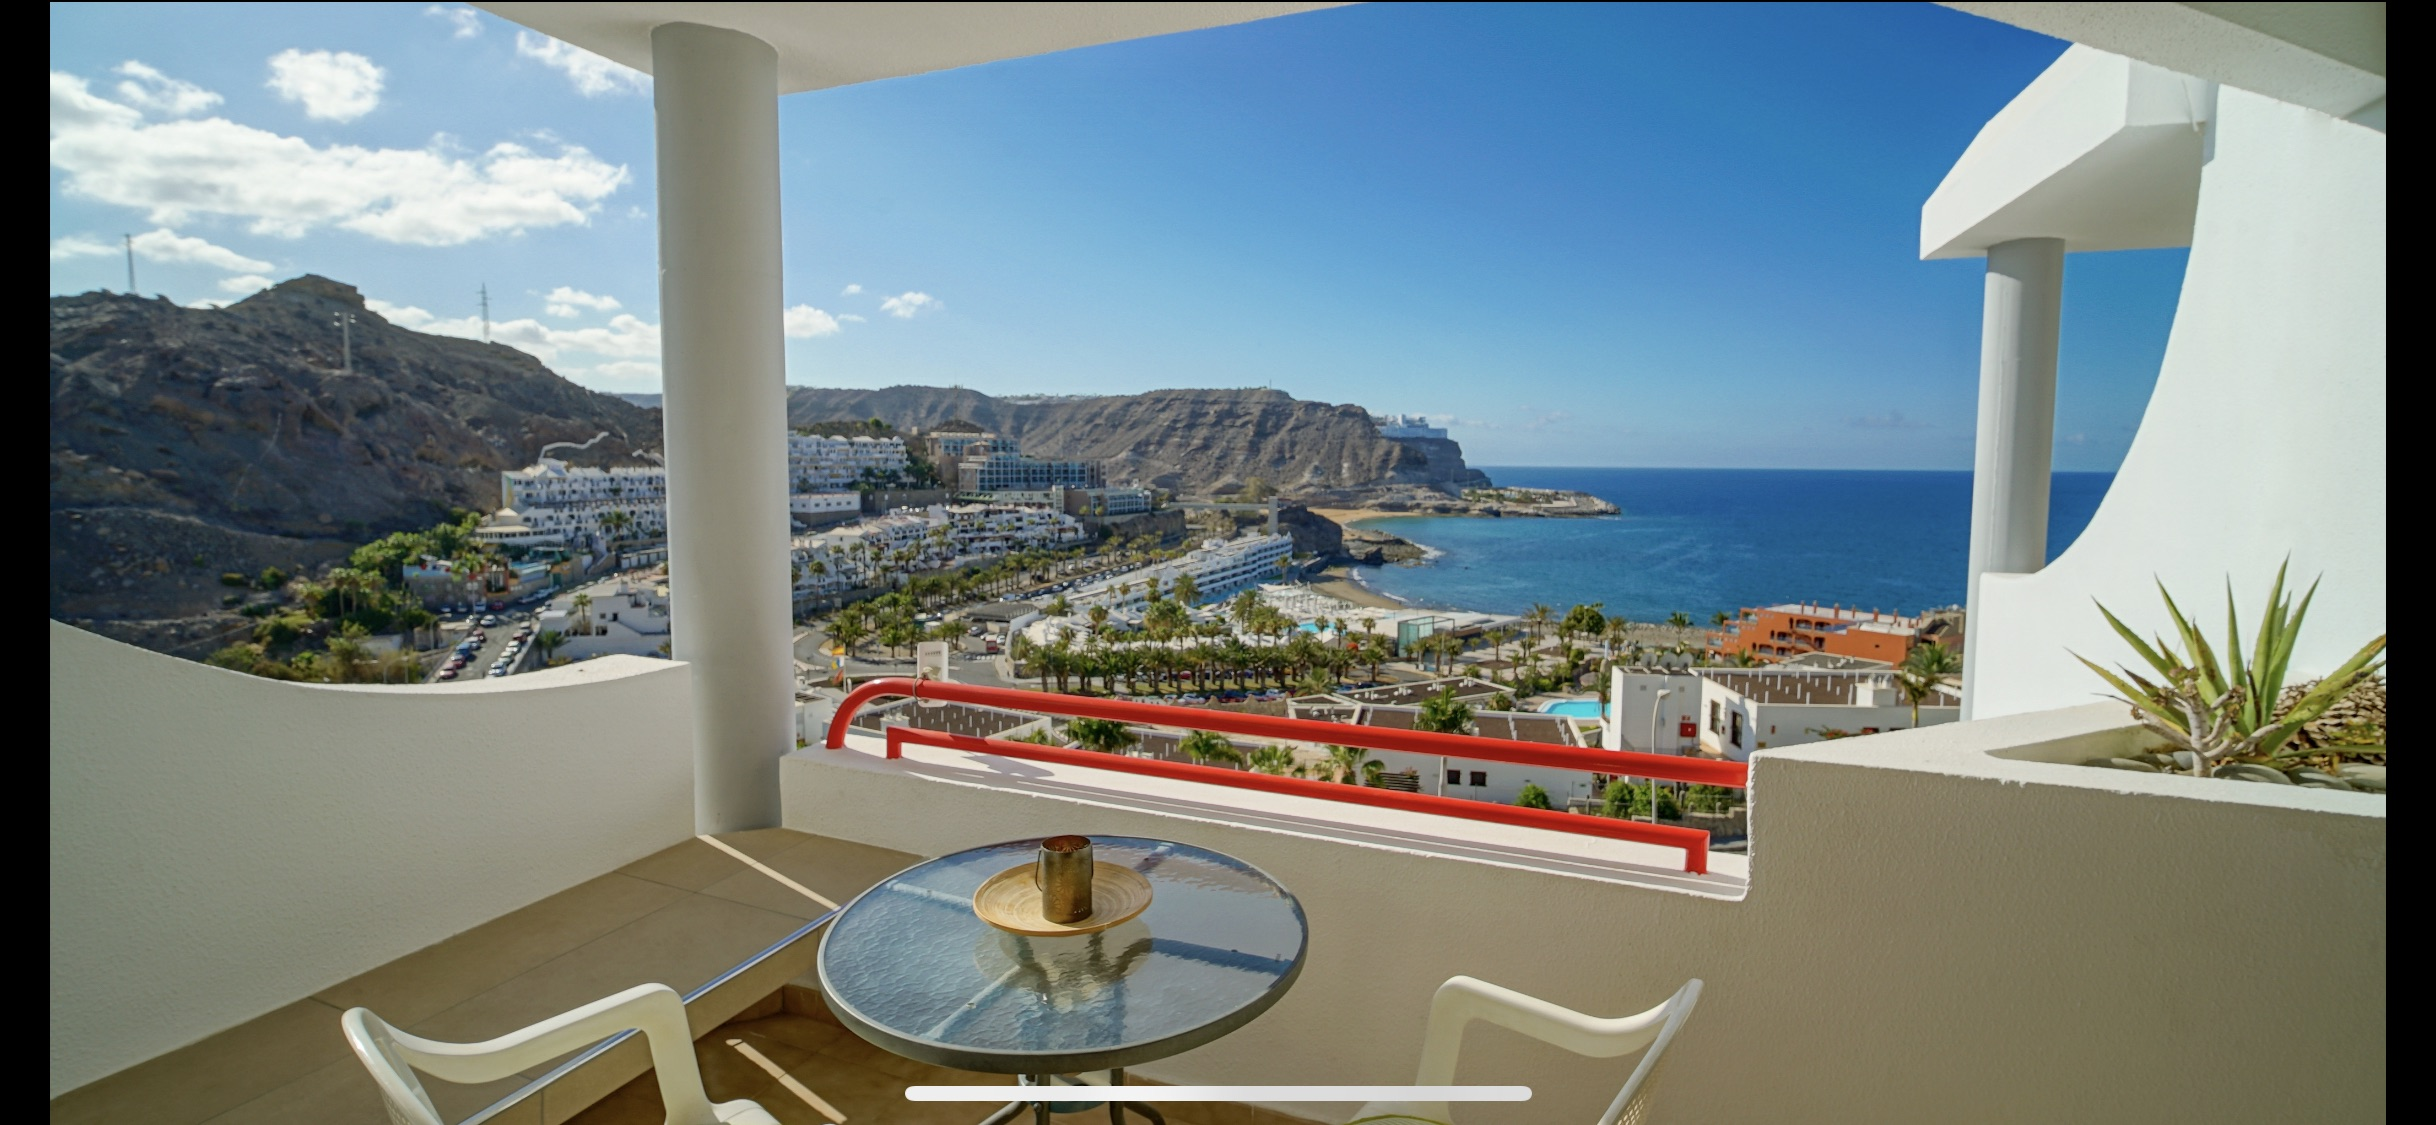 Penthouse Apartment in El Cardenal with Stunning Sea Views